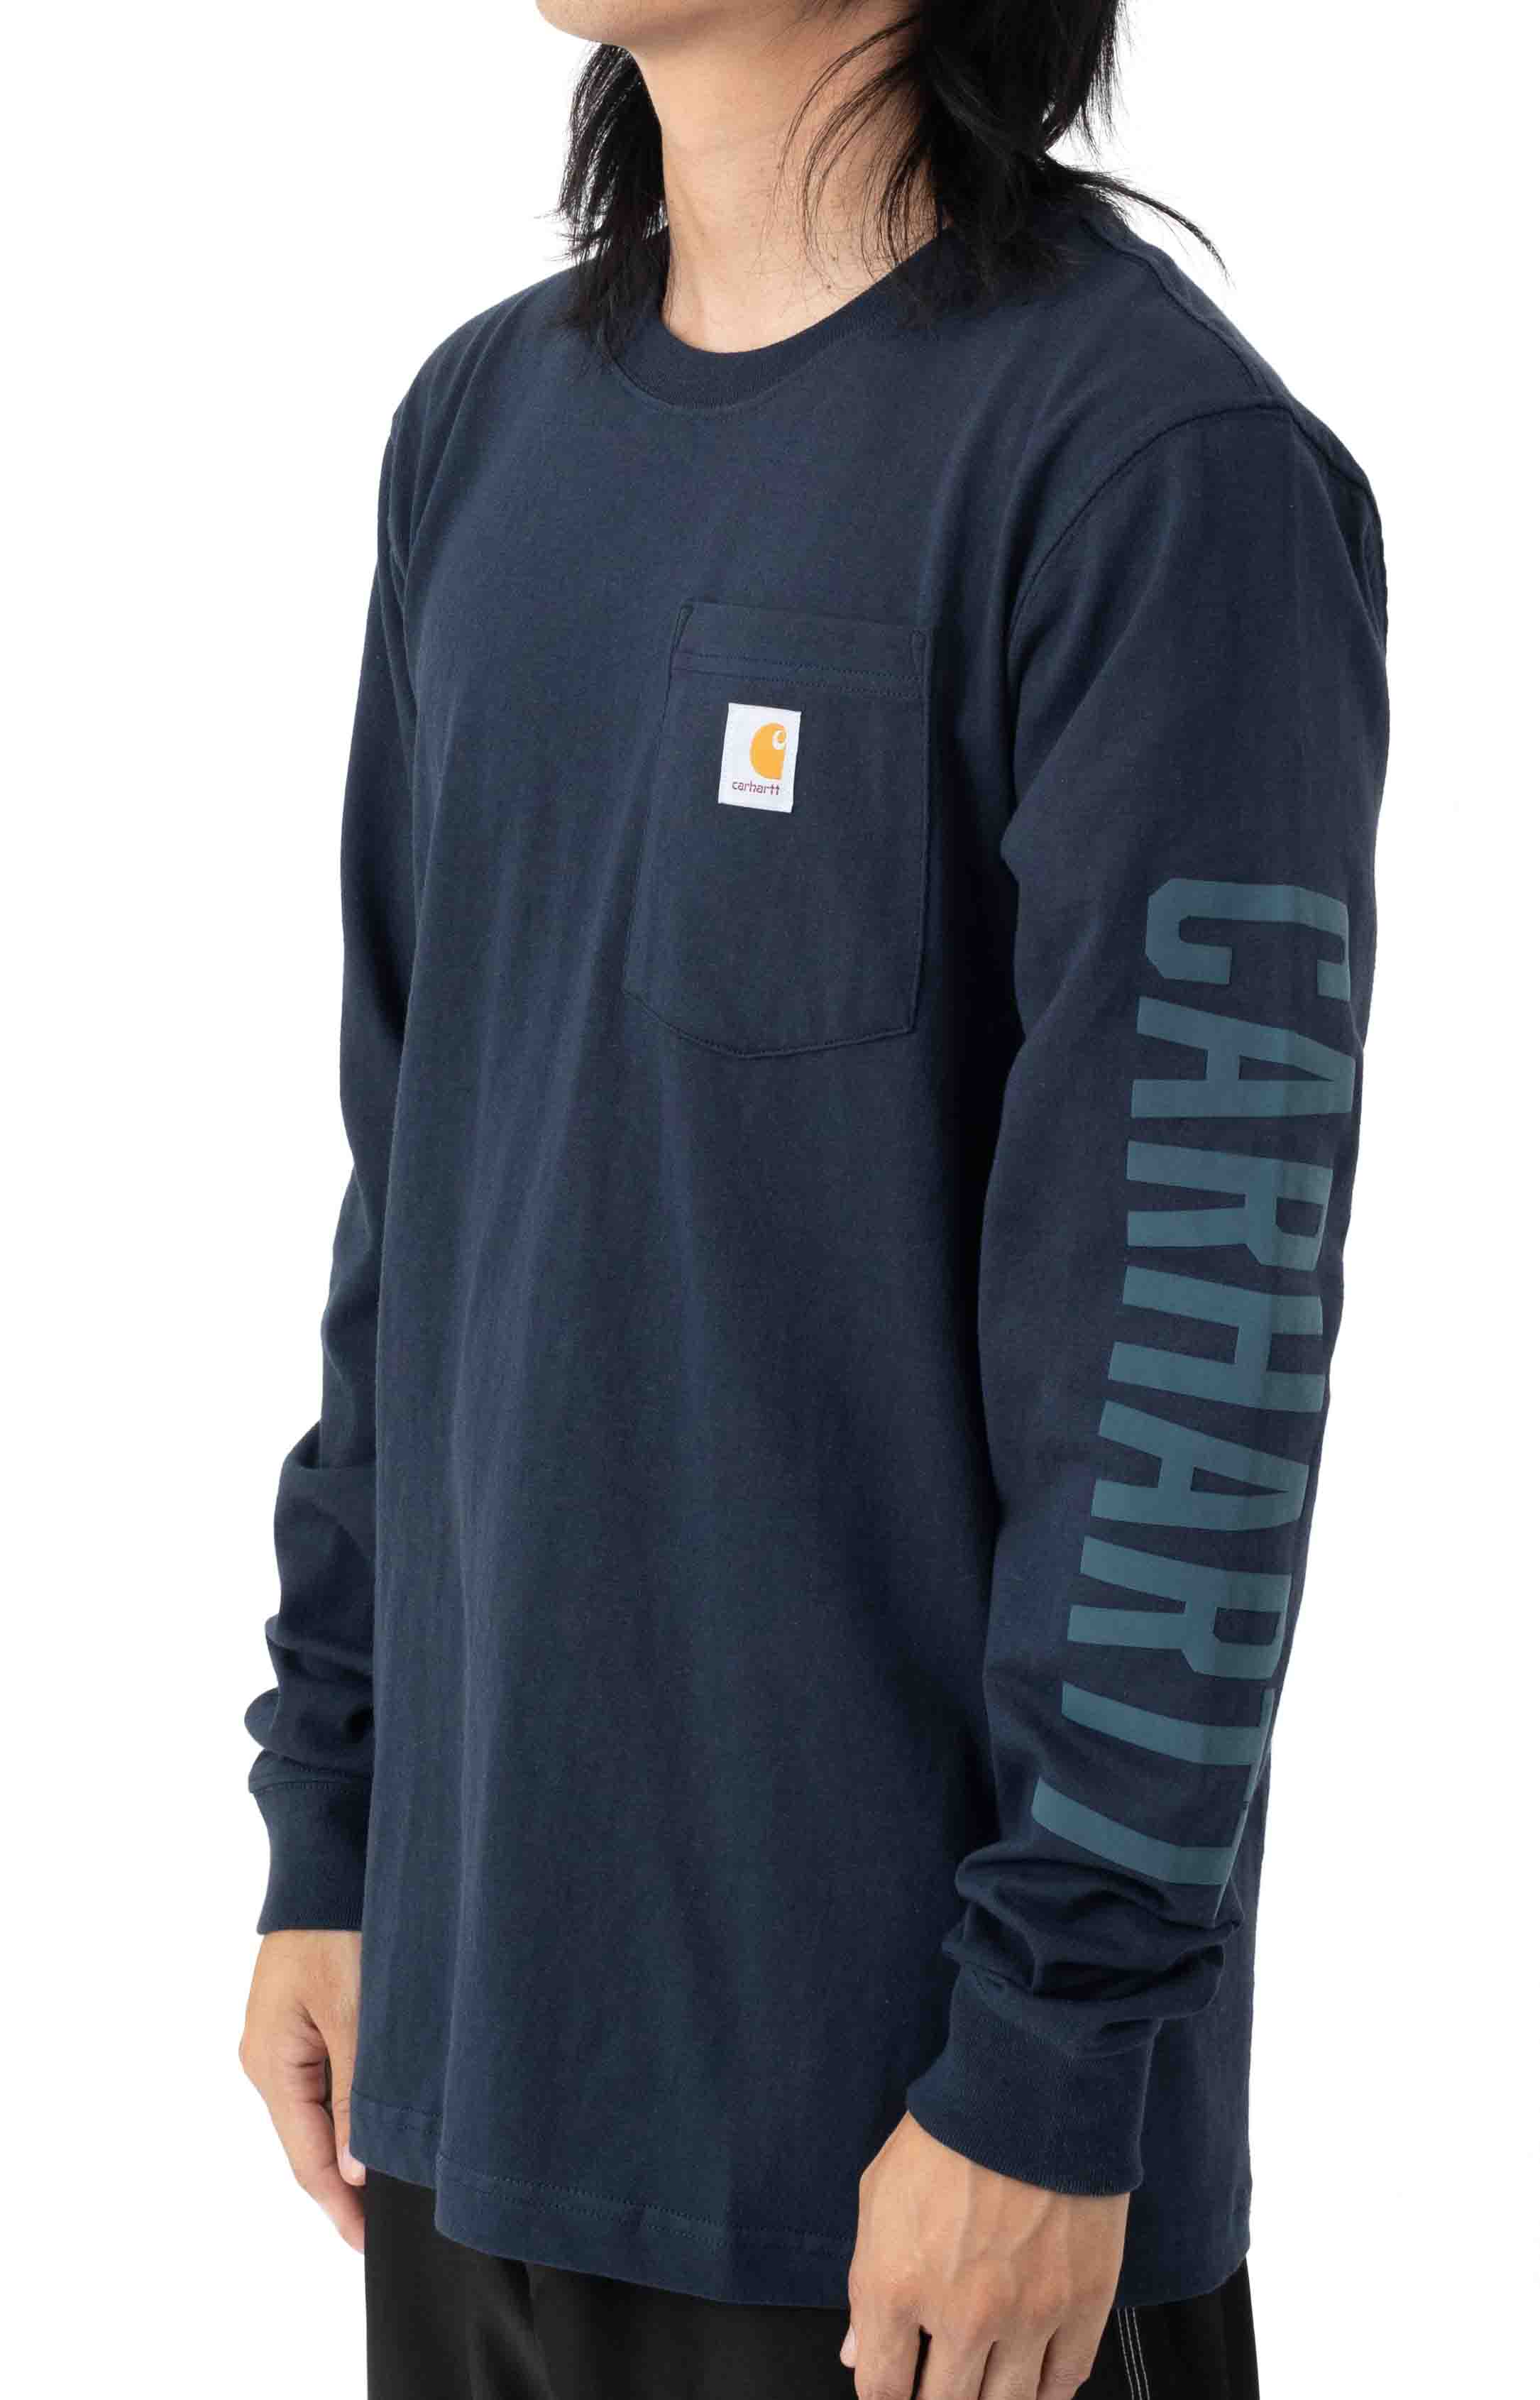 (105041) Relaxed Fit Heavyweight L/S Pocket Logo Graphic T-Shirt - Navy 2